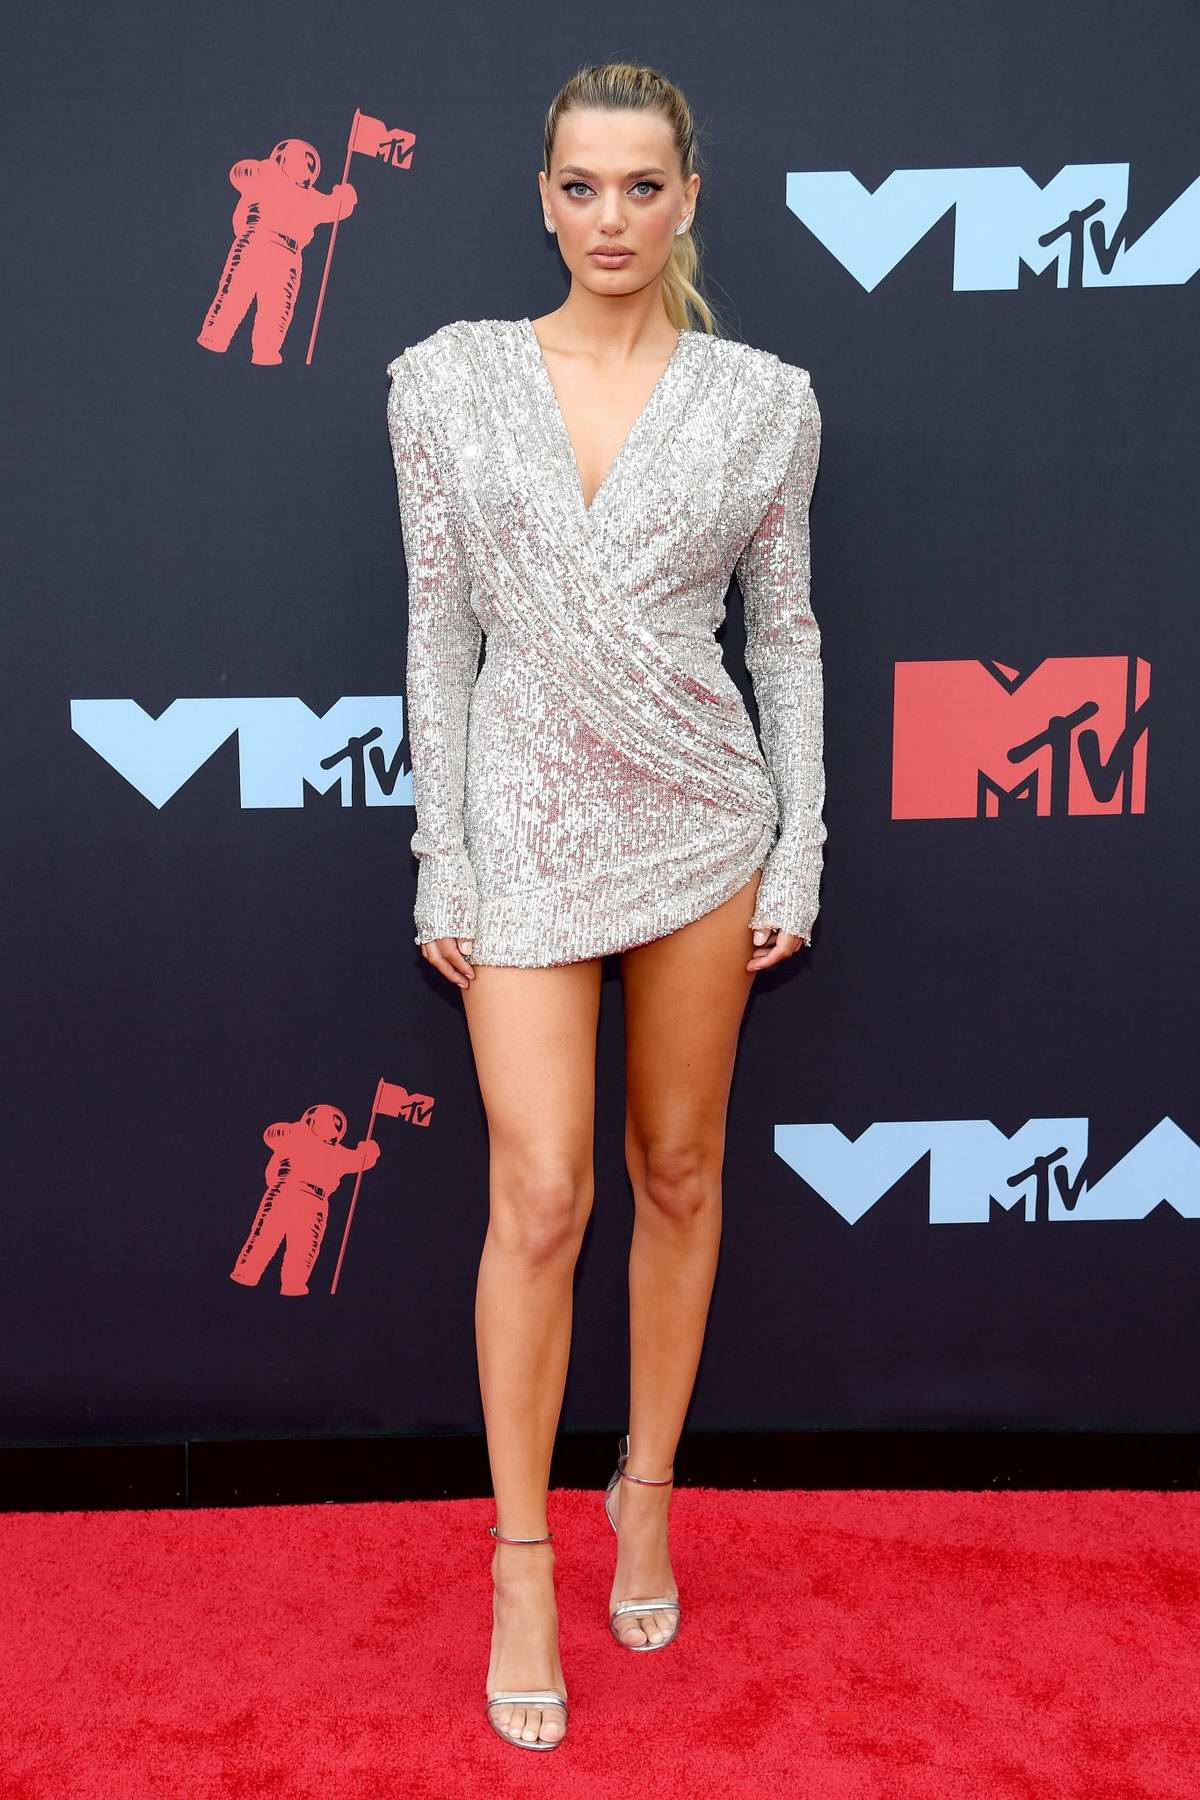 Bregje Heinen attends the 2019 MTV Video Music Awards at Prudential Center in Newark, New Jersey